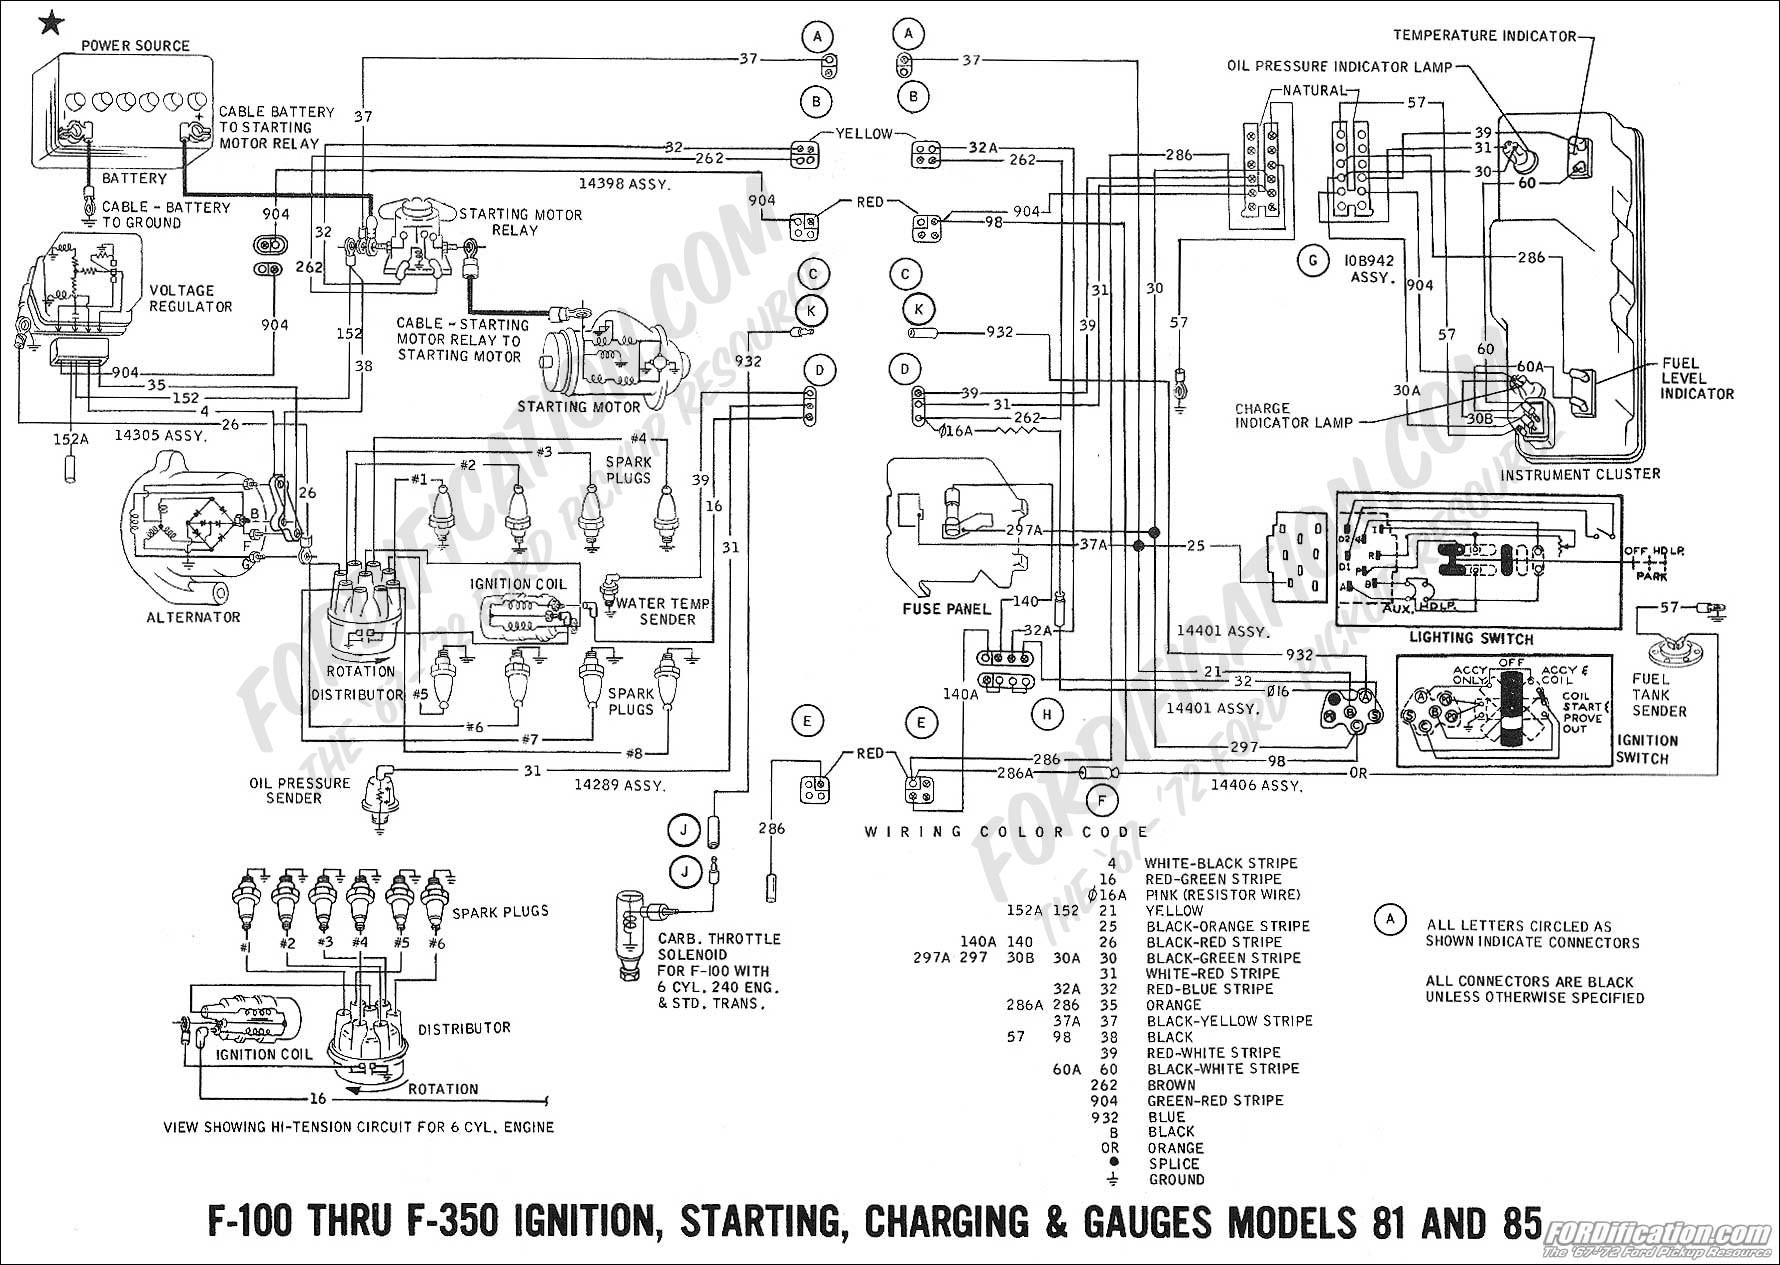 1976 ford truck steering column wiring diagram trusted wiring rh  soulmatestyle co 1969 Ford Torino Steering Wheel with Ring 1994 Ford Bronco  Steering Wheel